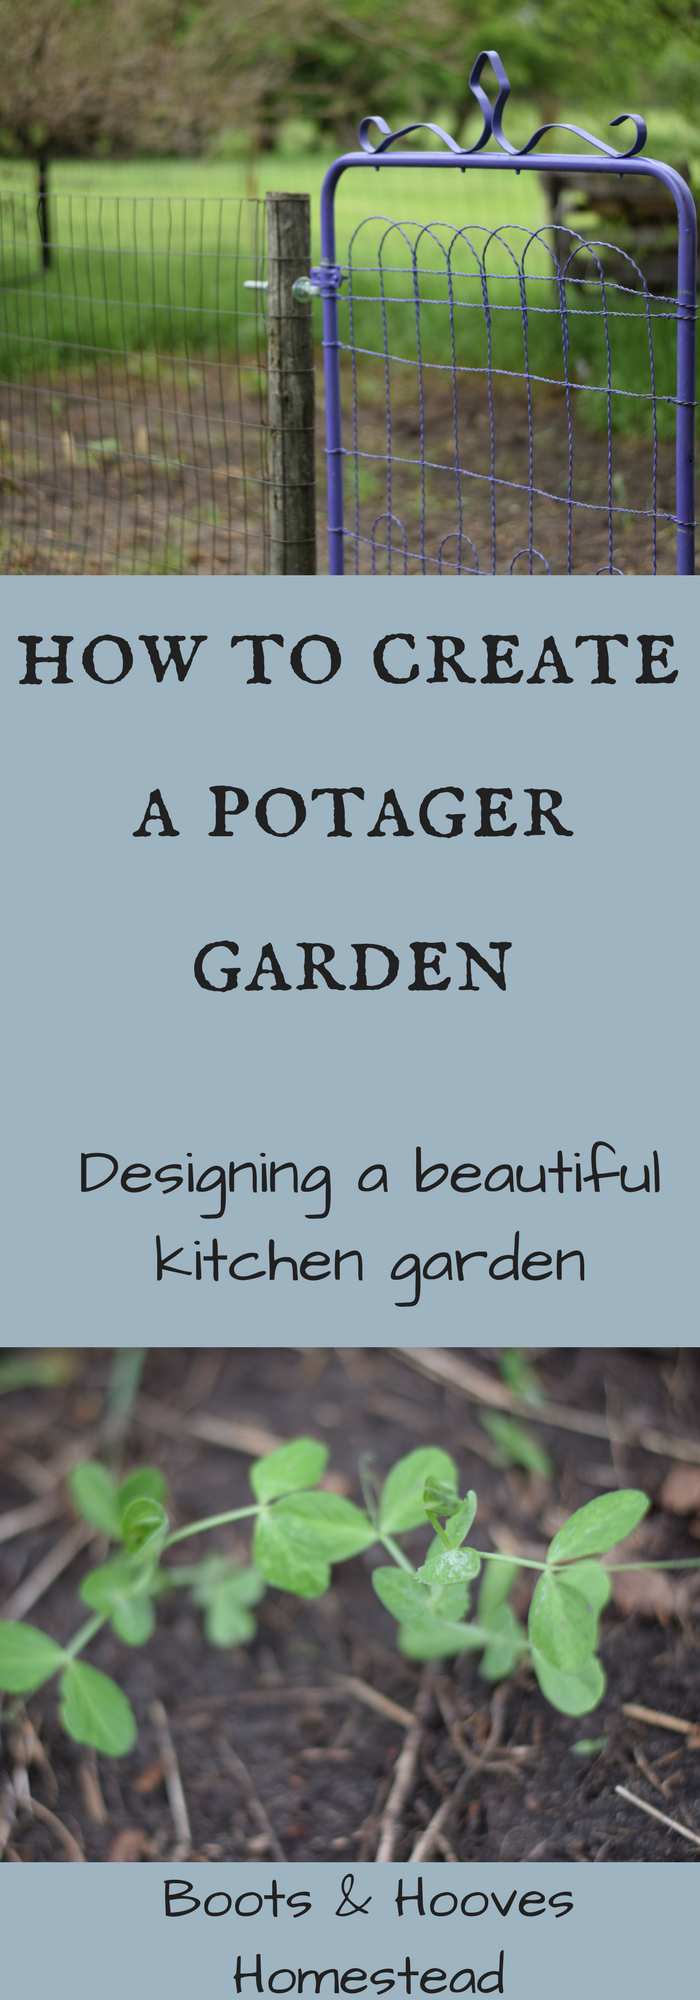 How to Create a Potager Garden - Boots & Hooves Homestead ...